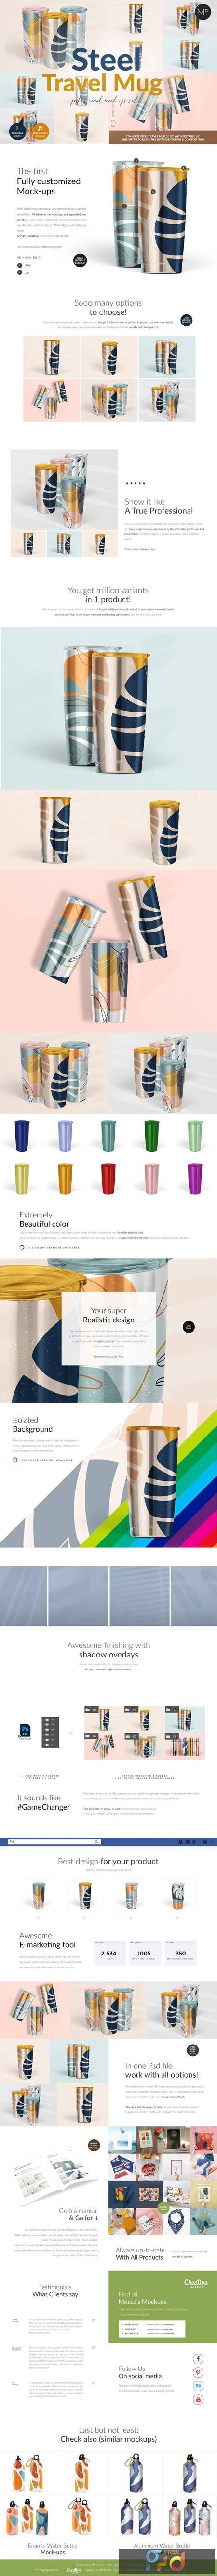 Travel Mug Professional Mock-ups Set 5502633 1